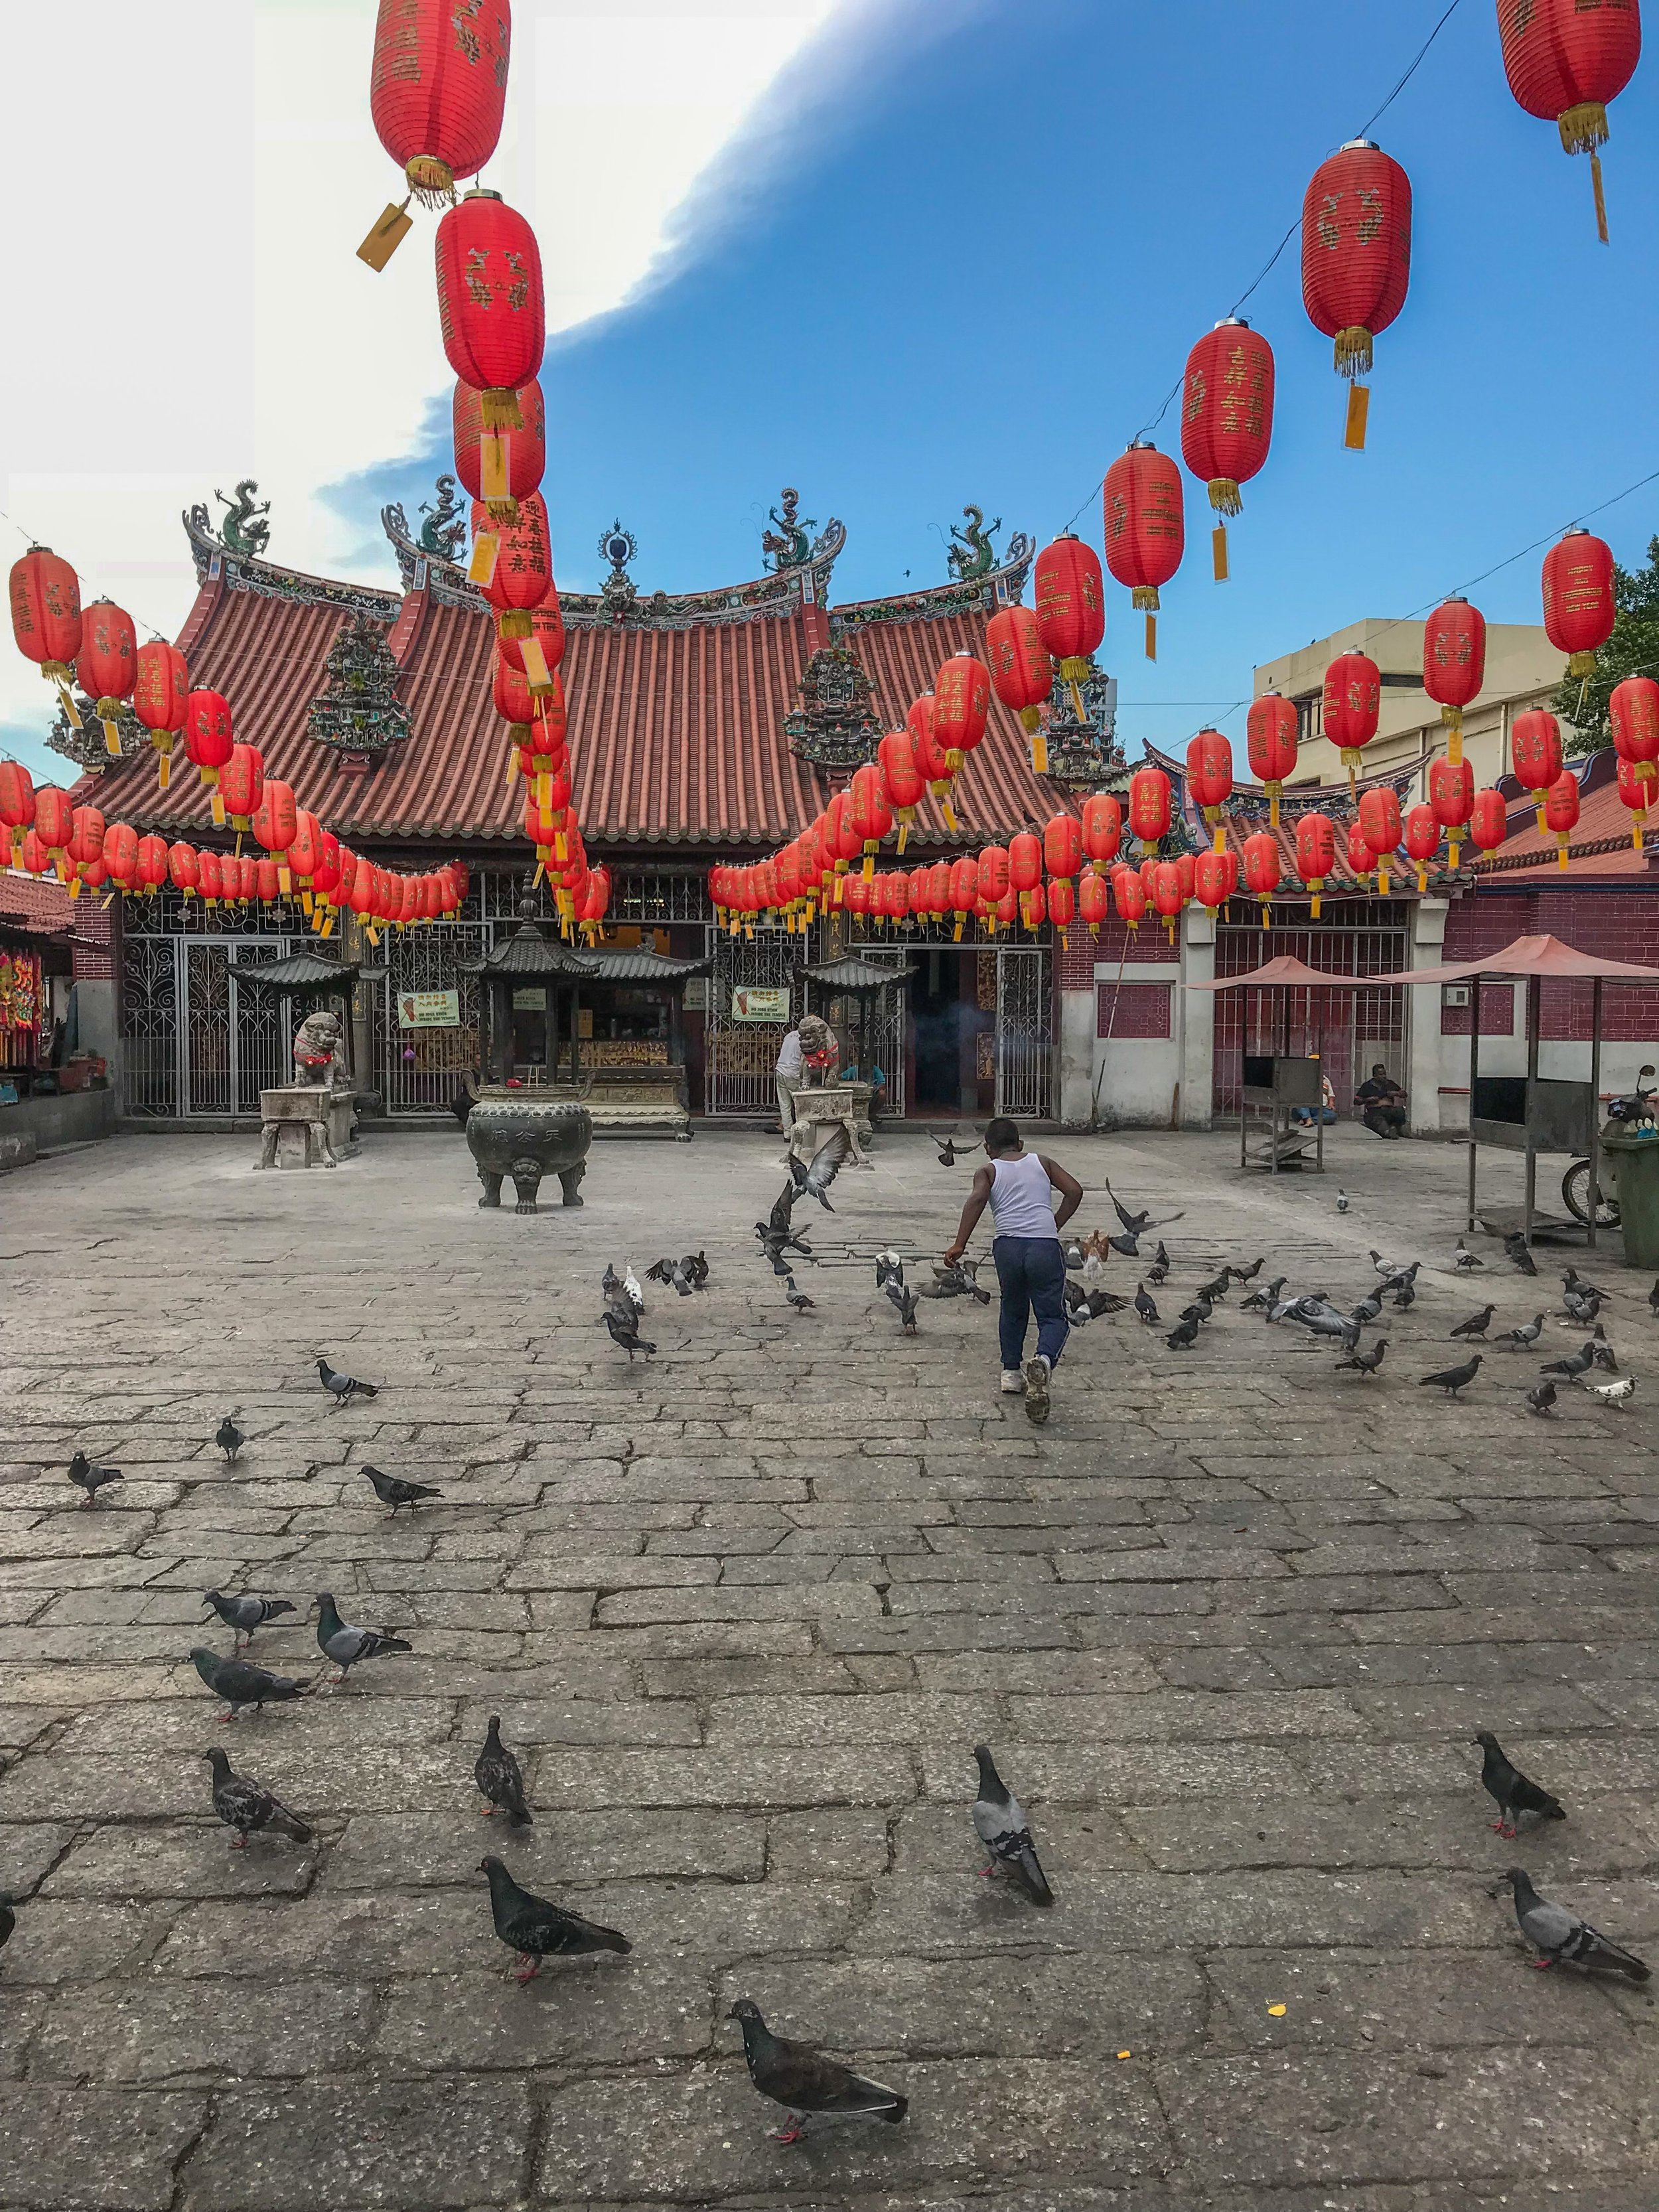 Preparing for Chinese New Year in Penang